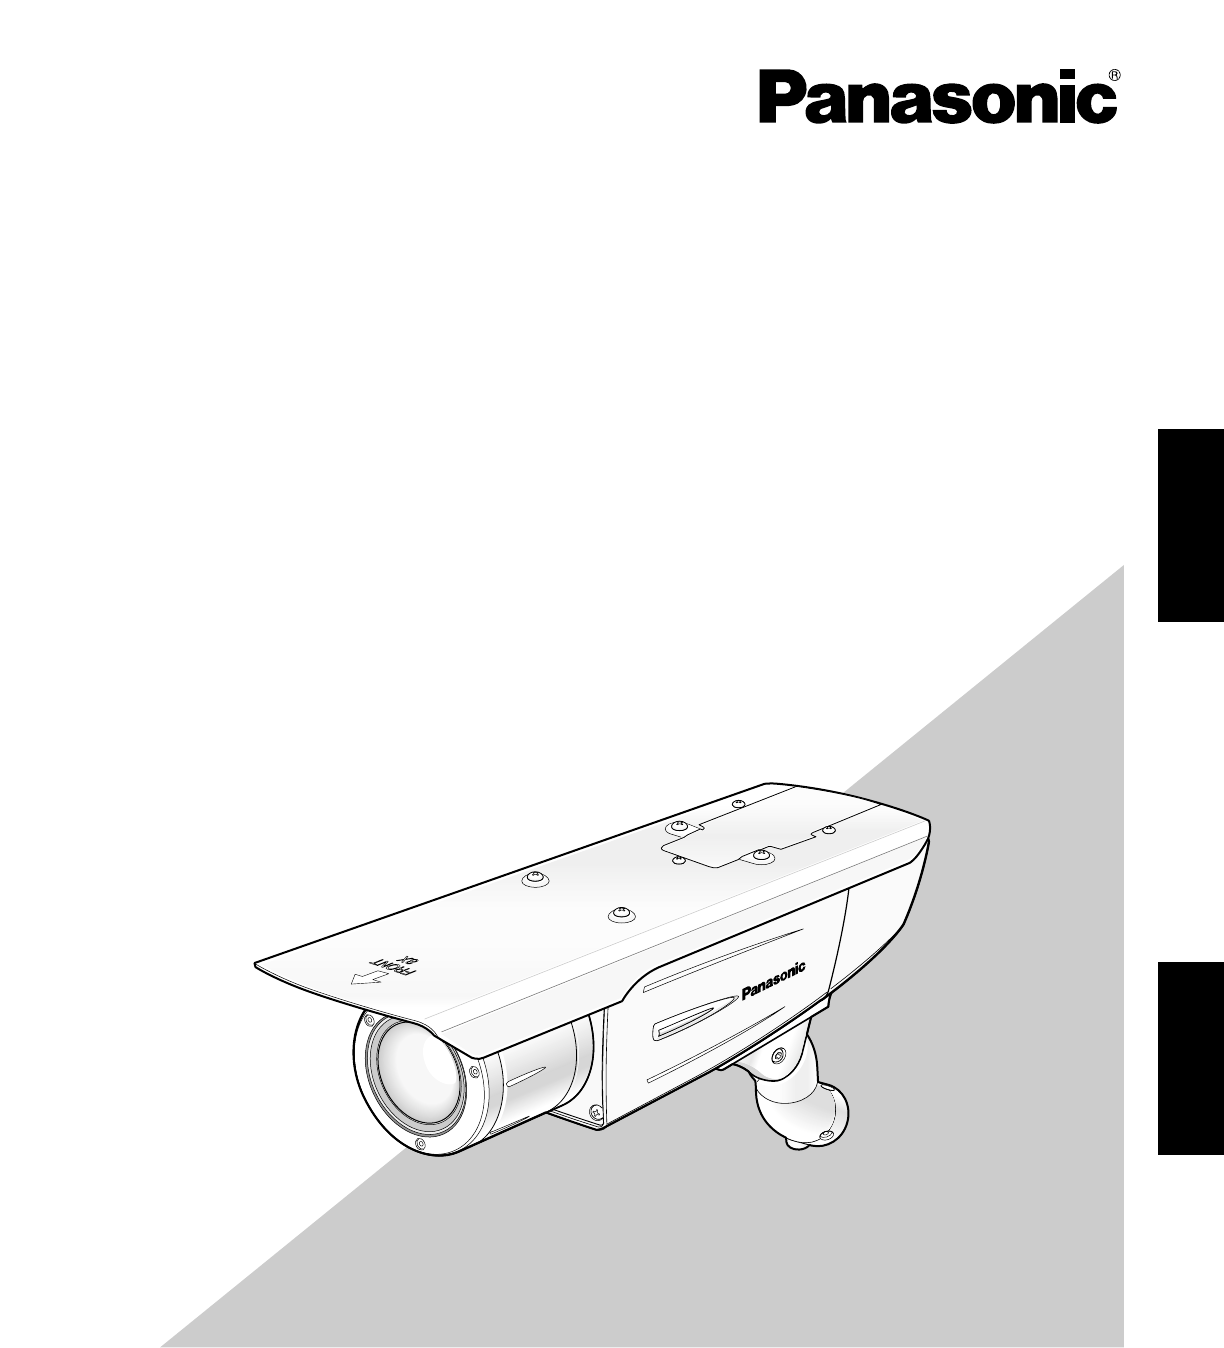 Panasonic Home Security System Wv Cw384 User Guide border=